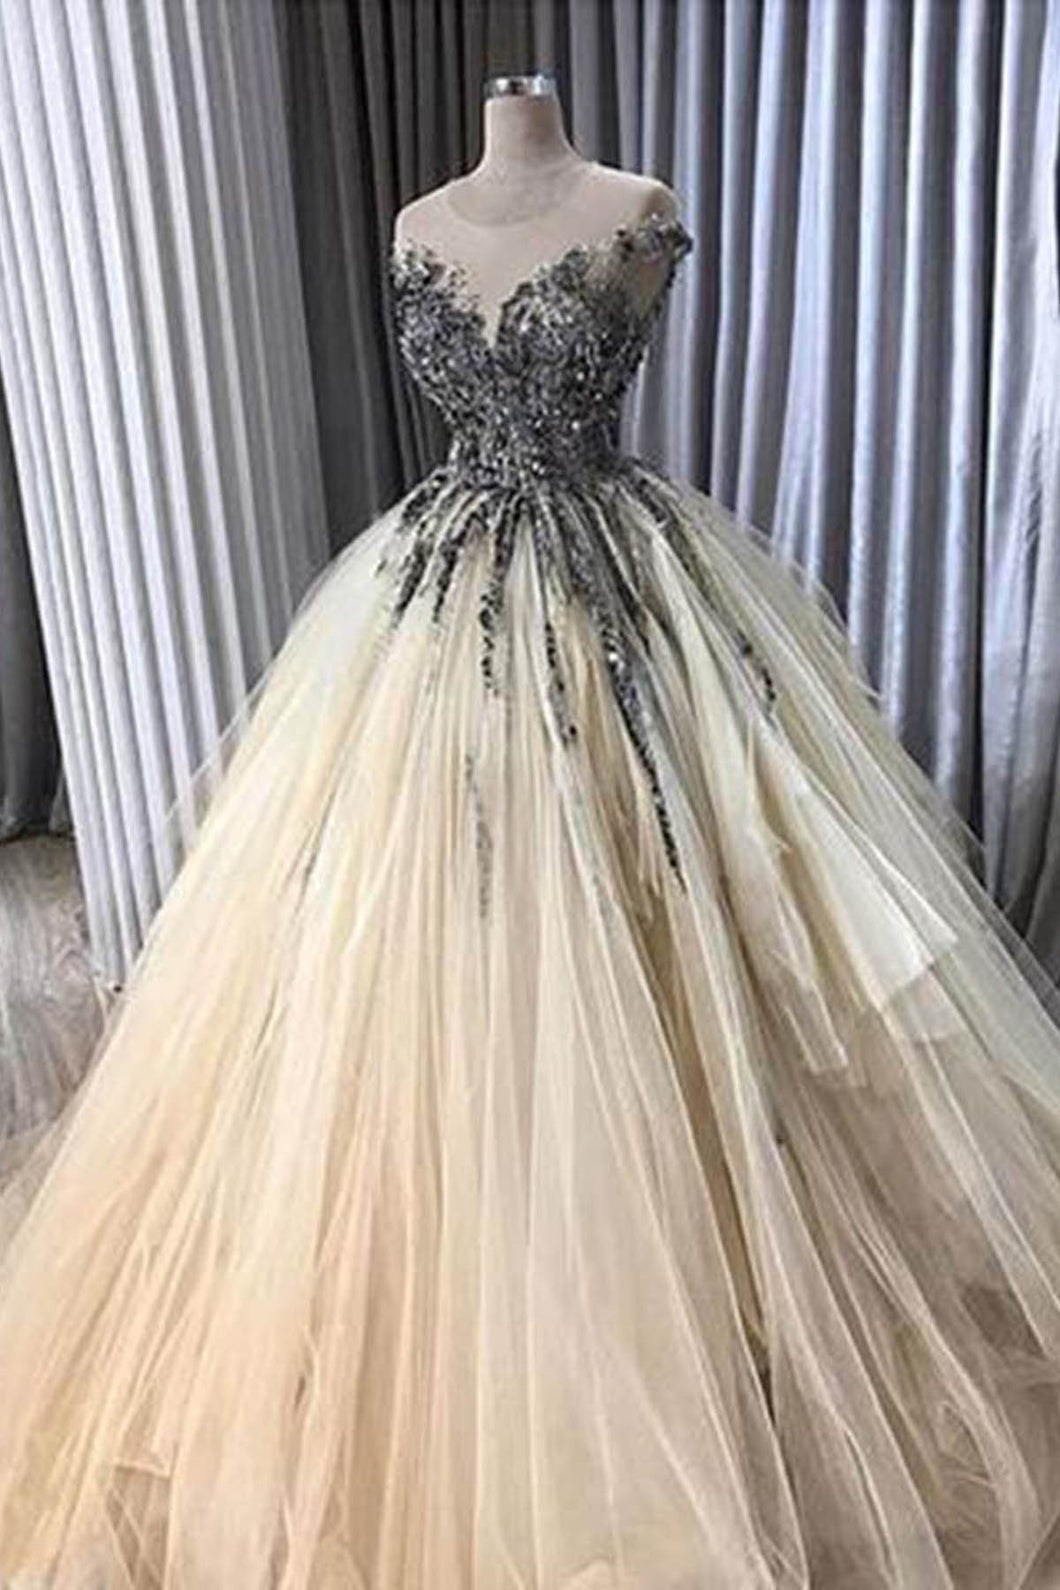 2019 Prom Dresses | Creamy tulle O neck long ruffles lace appliqué evening dress with cap sleeve